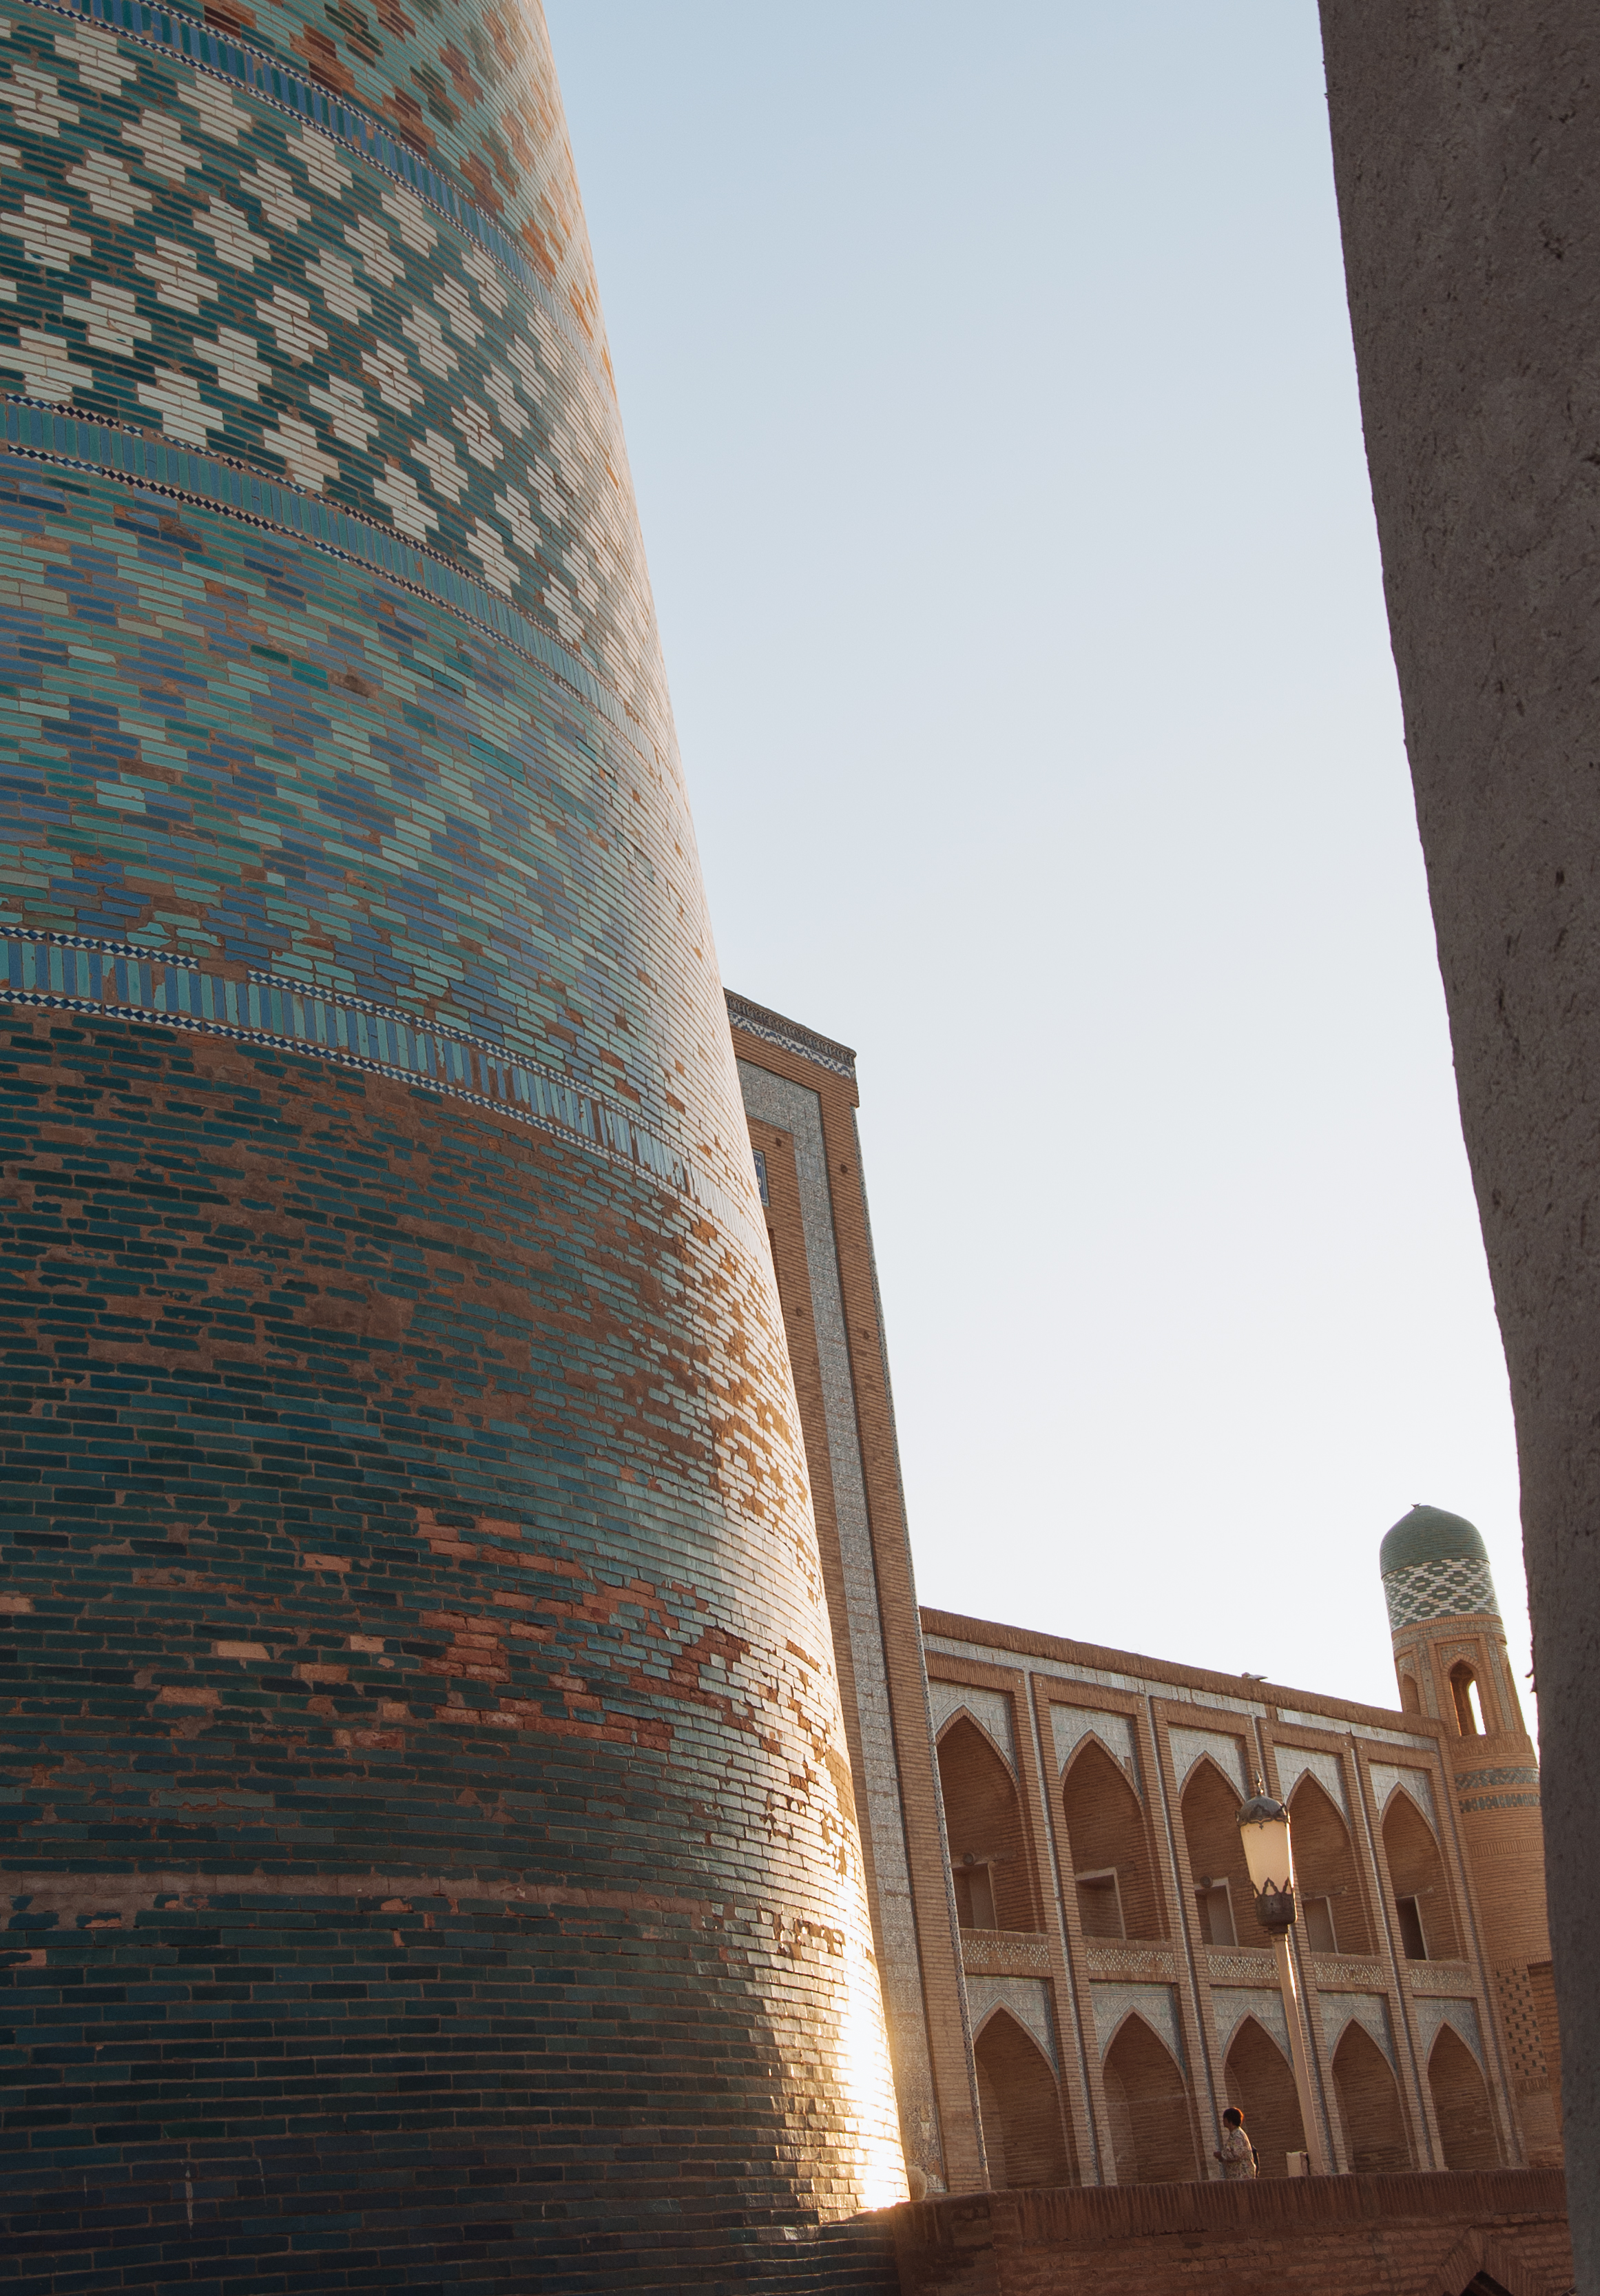 The famous mosaic tower of Khiva